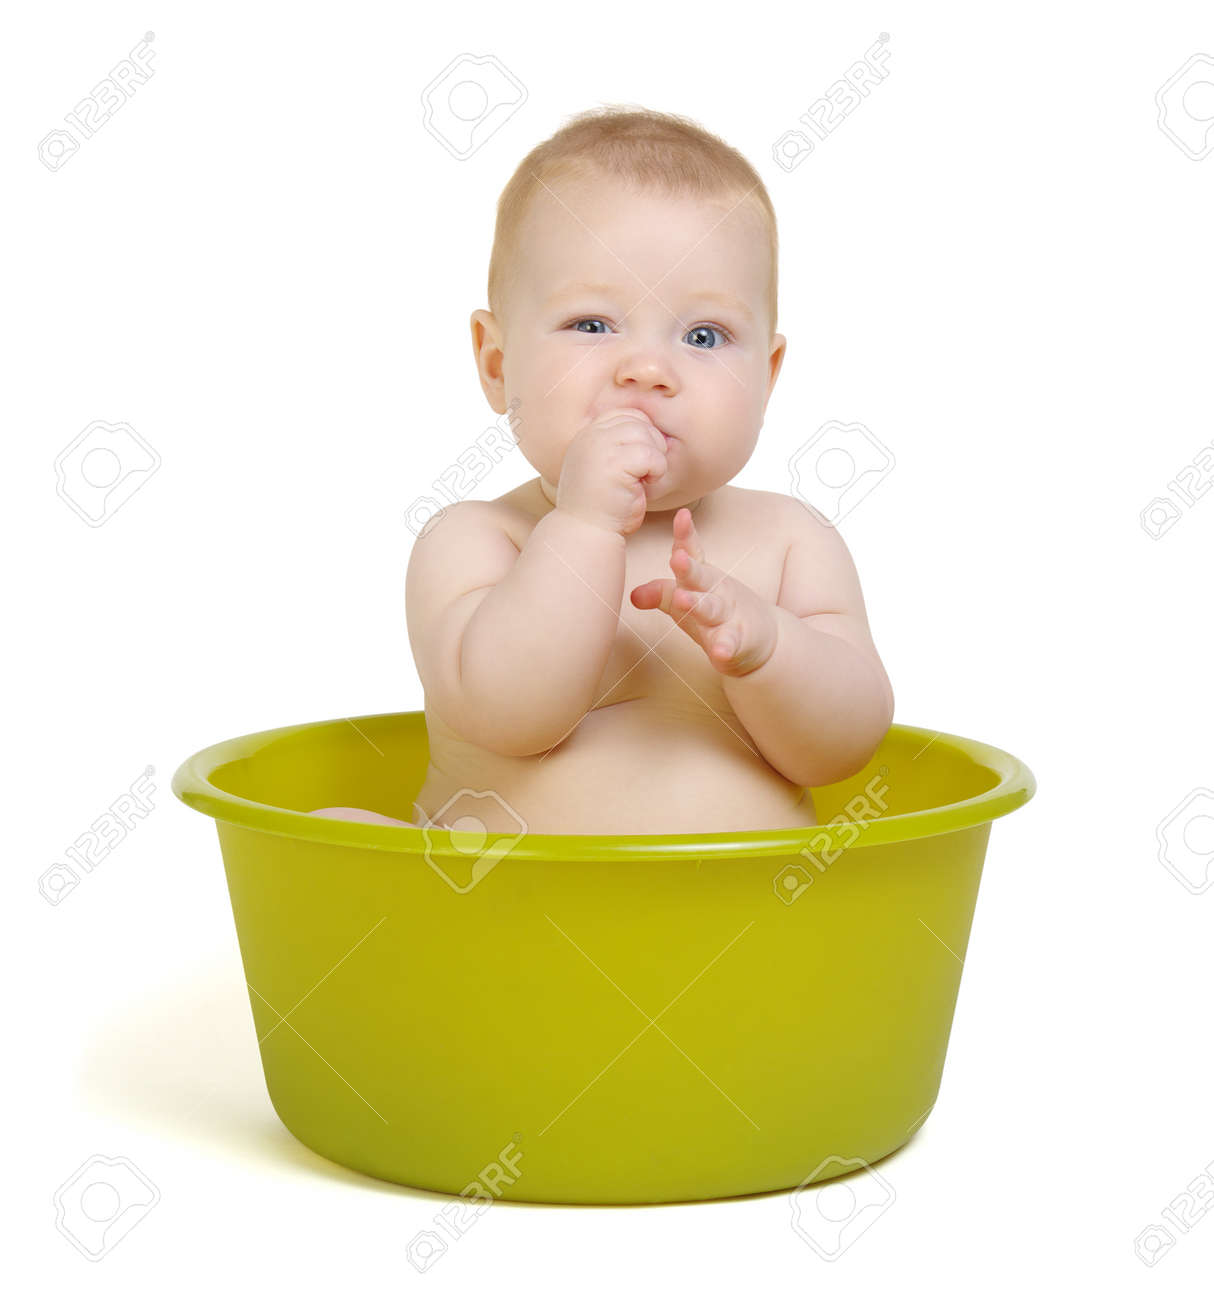 Cute Baby Having Bath In The Tub Stock Photo, Picture And Royalty ...